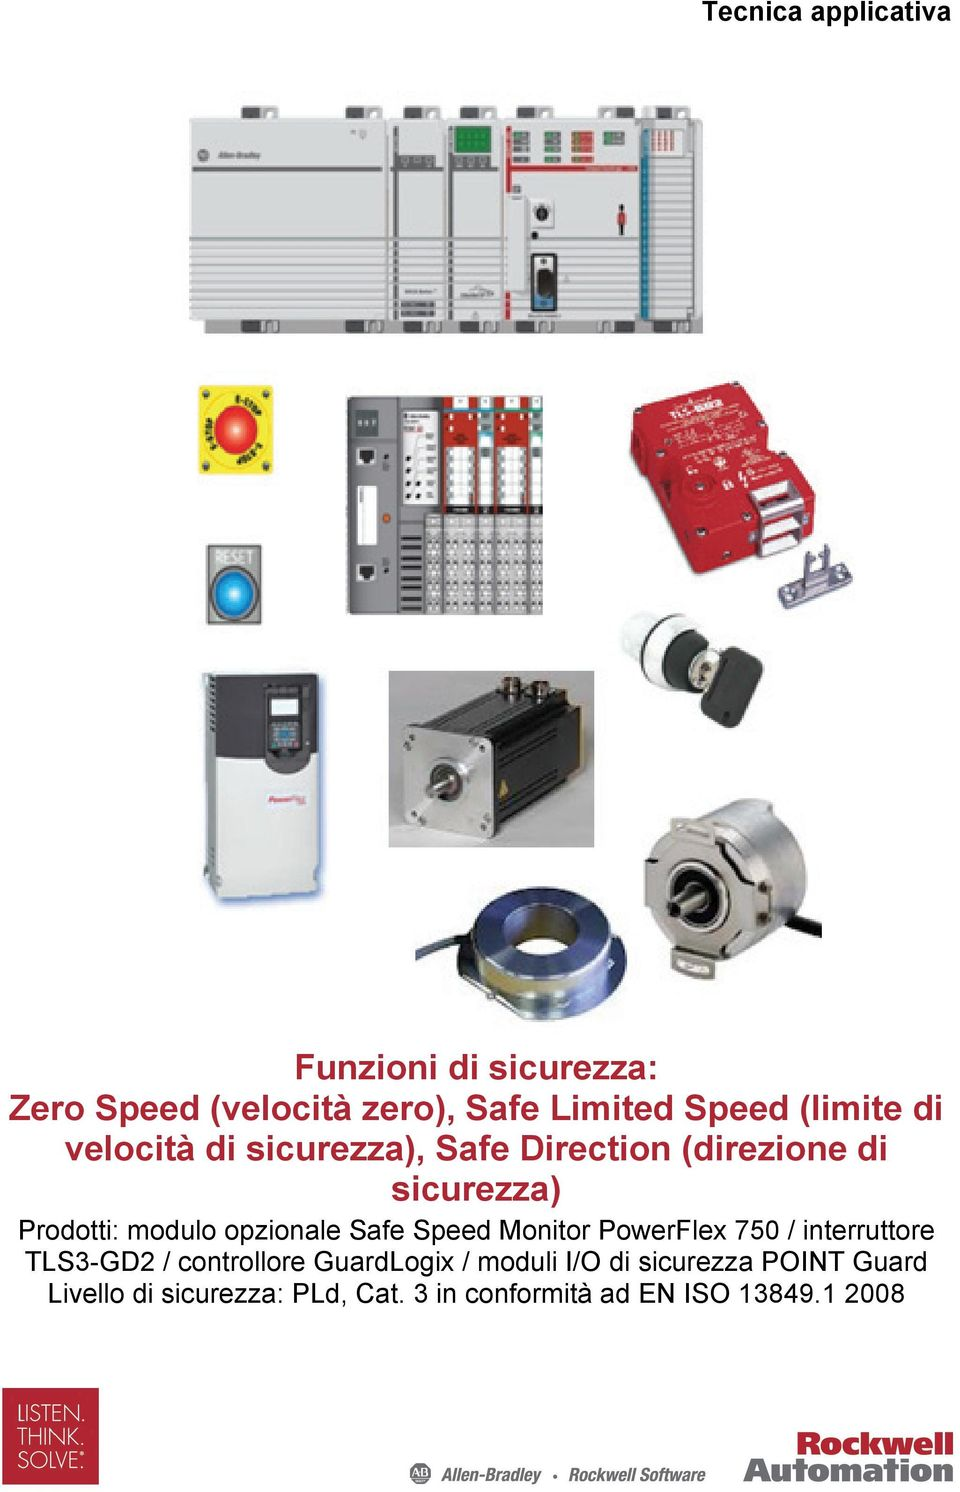 opzionale Safe Speed Monitor PowerFlex 750 / interruttore TLS3-GD2 / controllore GuardLogix /